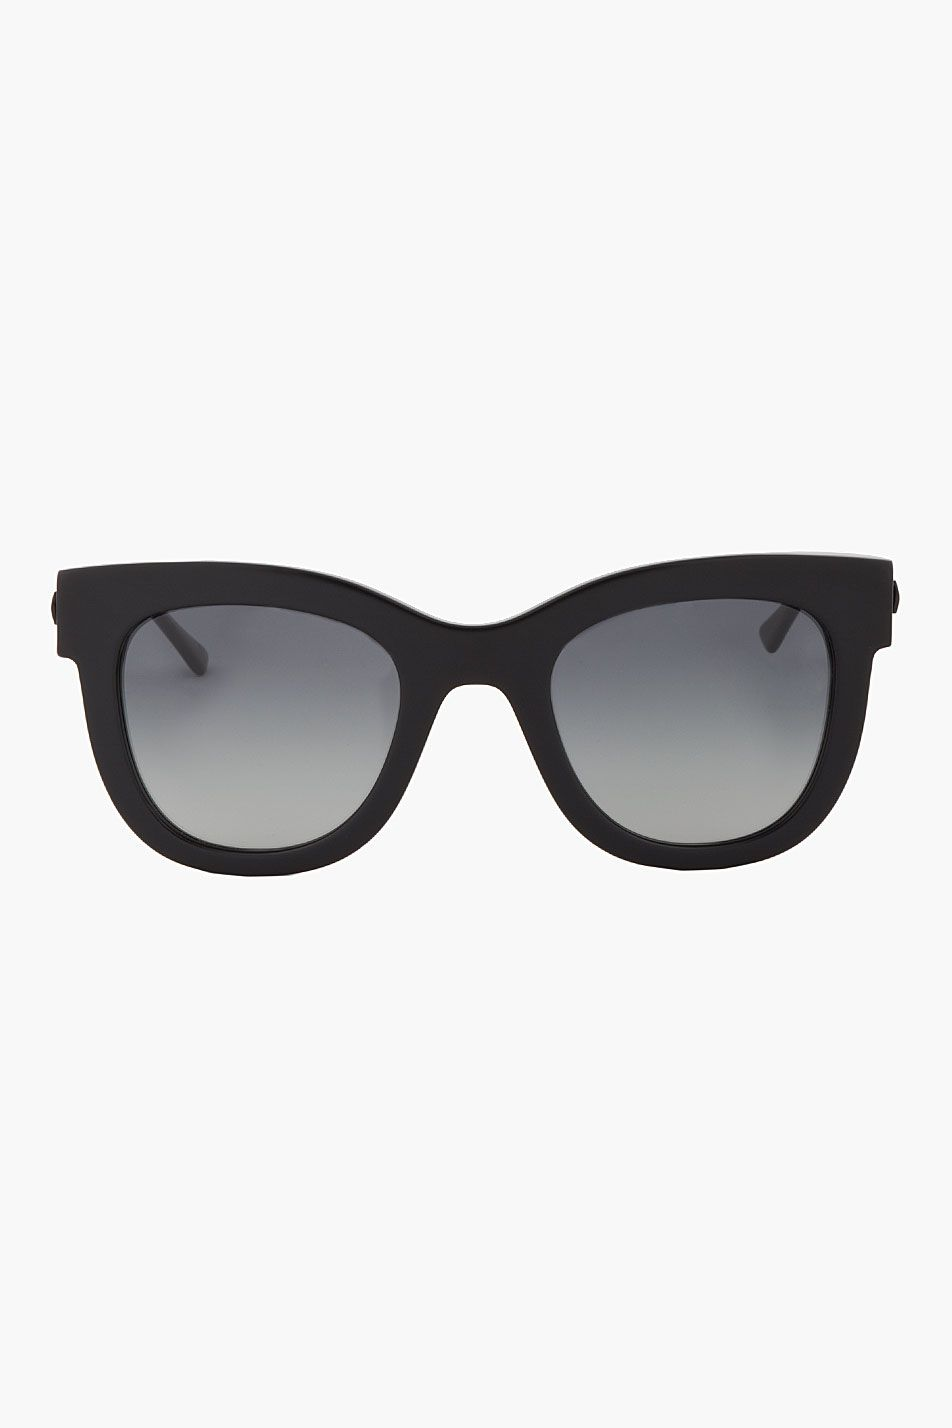 27dd5930ada0 Thierry  Lasry Matte  Black Sexxxy Limited Edition  Sunglasses ...